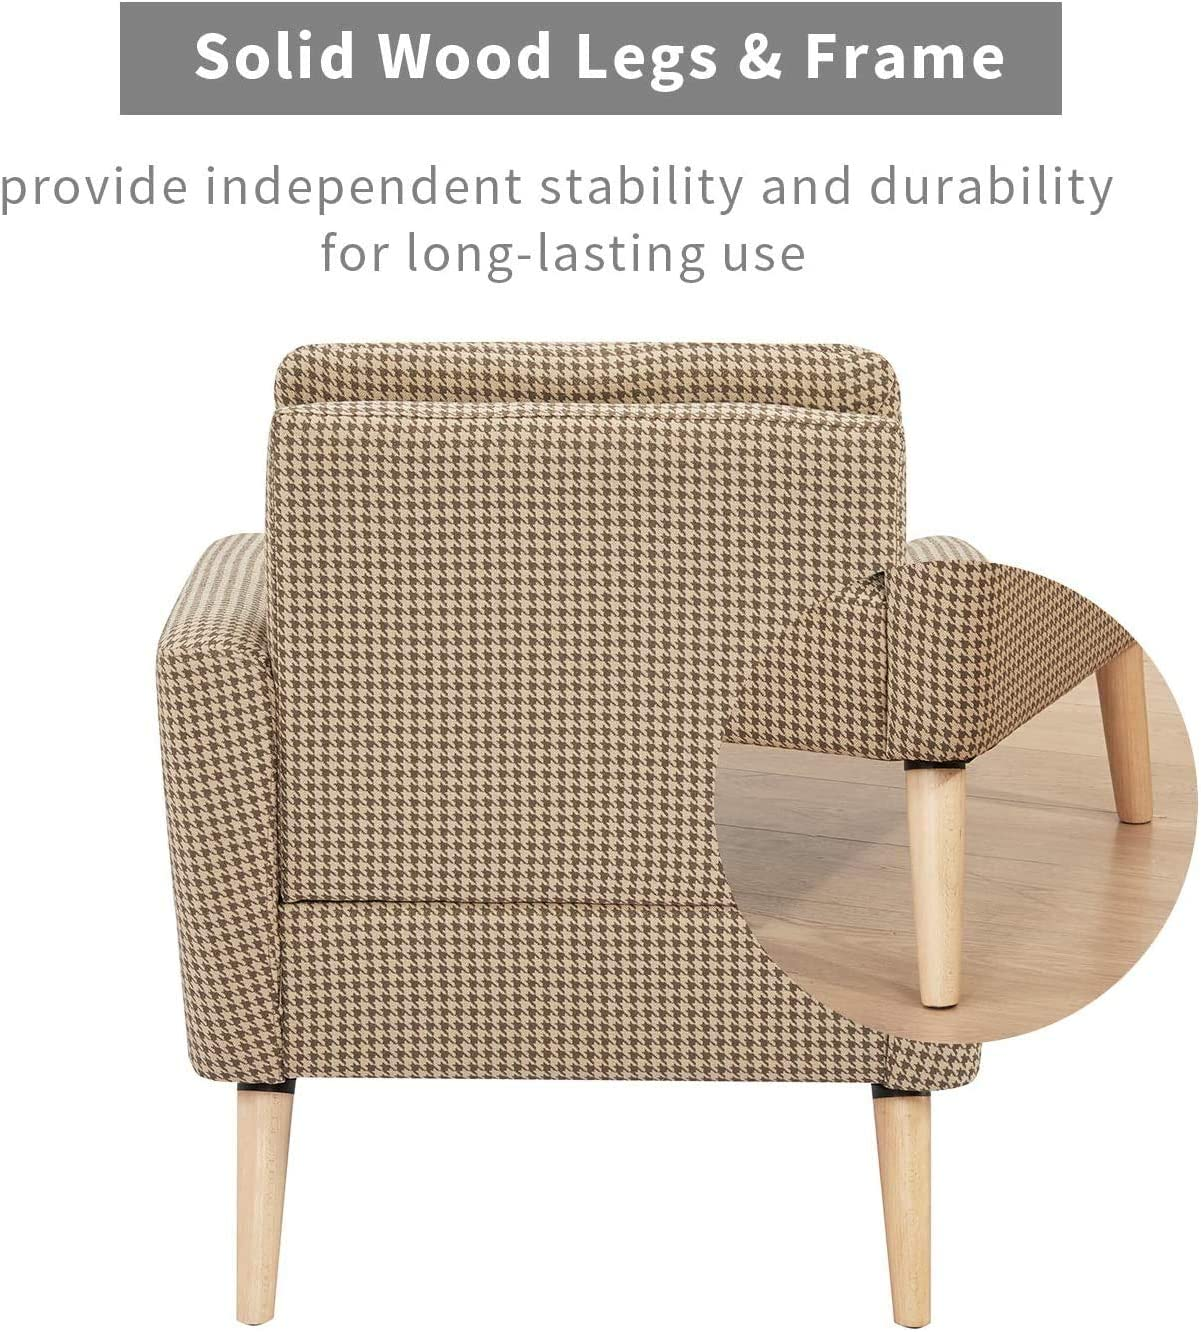 Accent Chair lauraland Capacity Weight ups to 350 lbs Solid Wood Legs and High-Density Foam Unique Prints and Durable Fabric